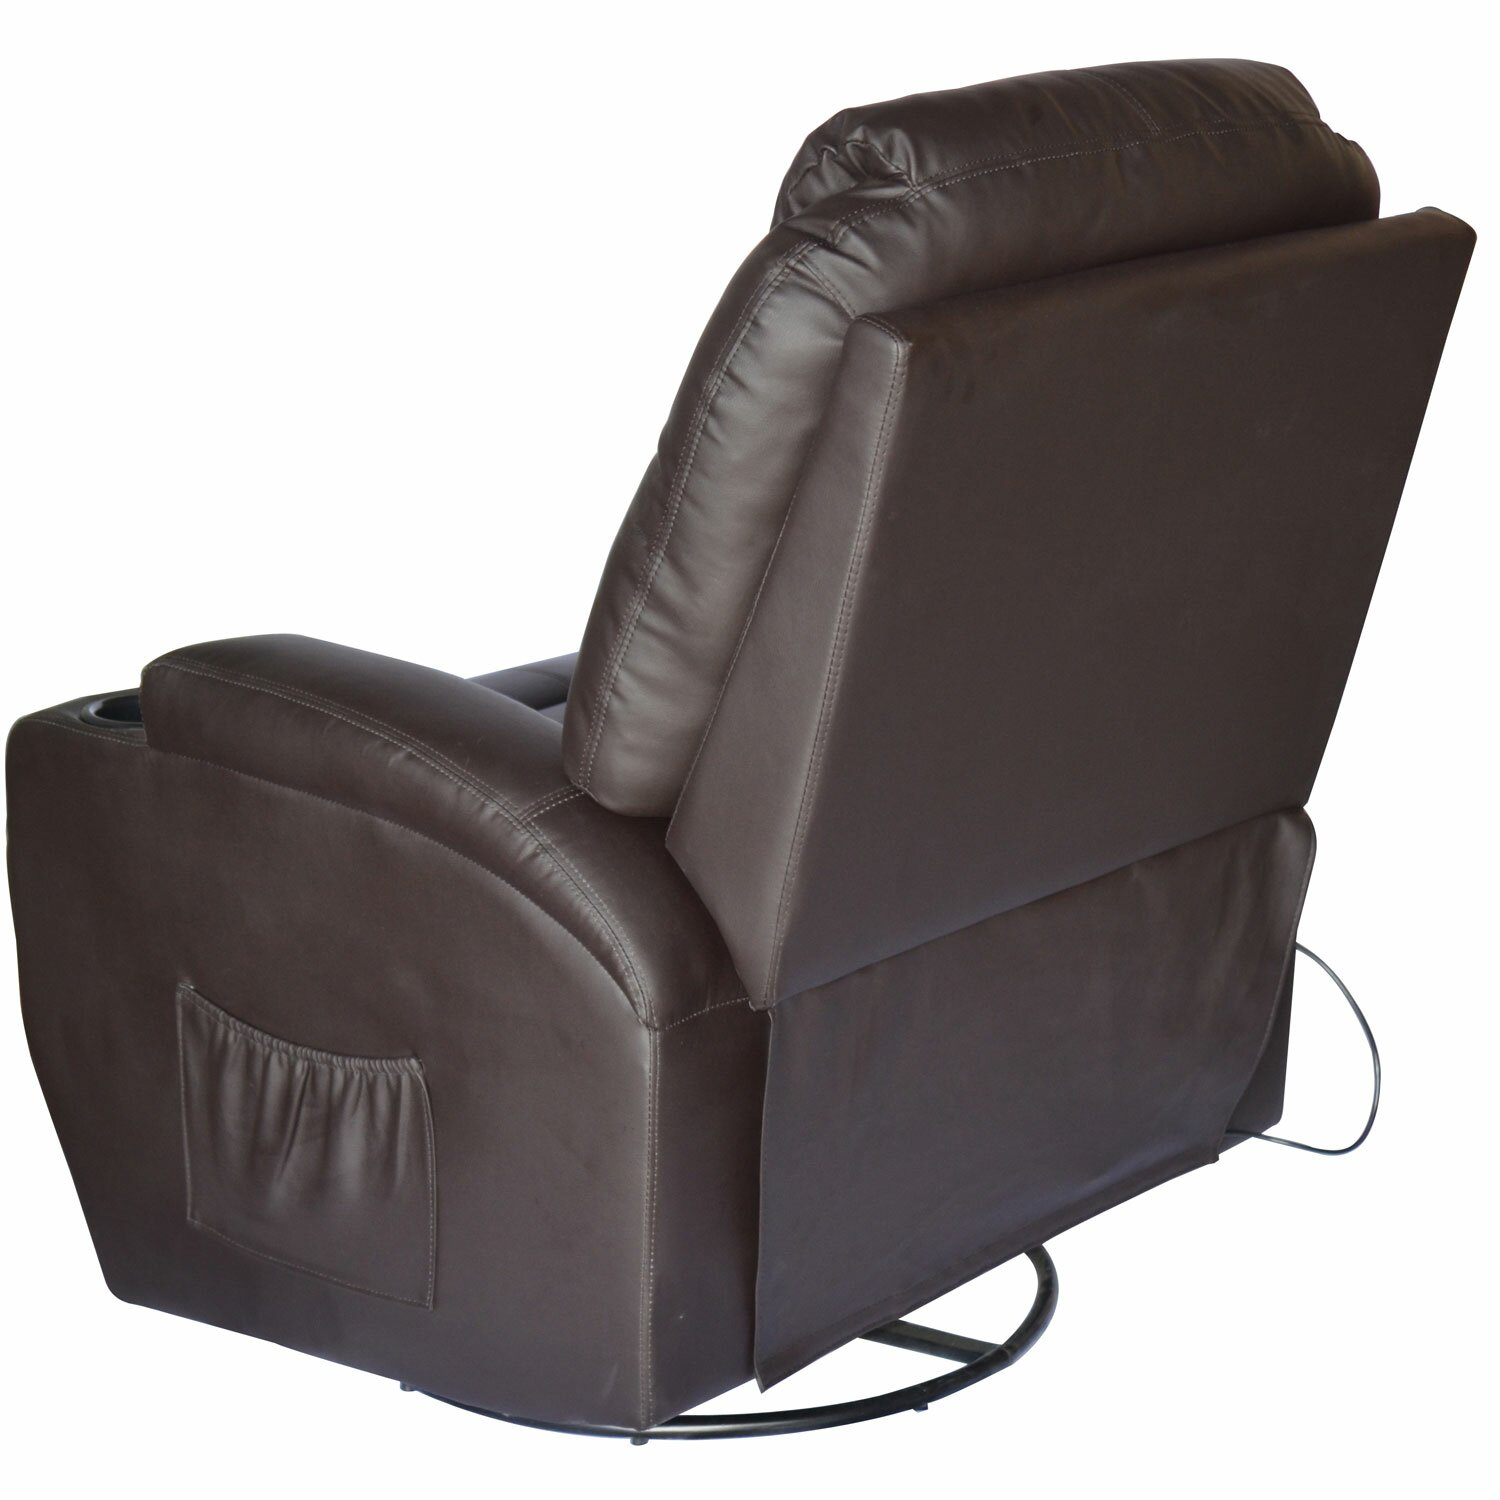 Furniture Living Room Furniture ... Brown Recliners Outsunny SKU ...